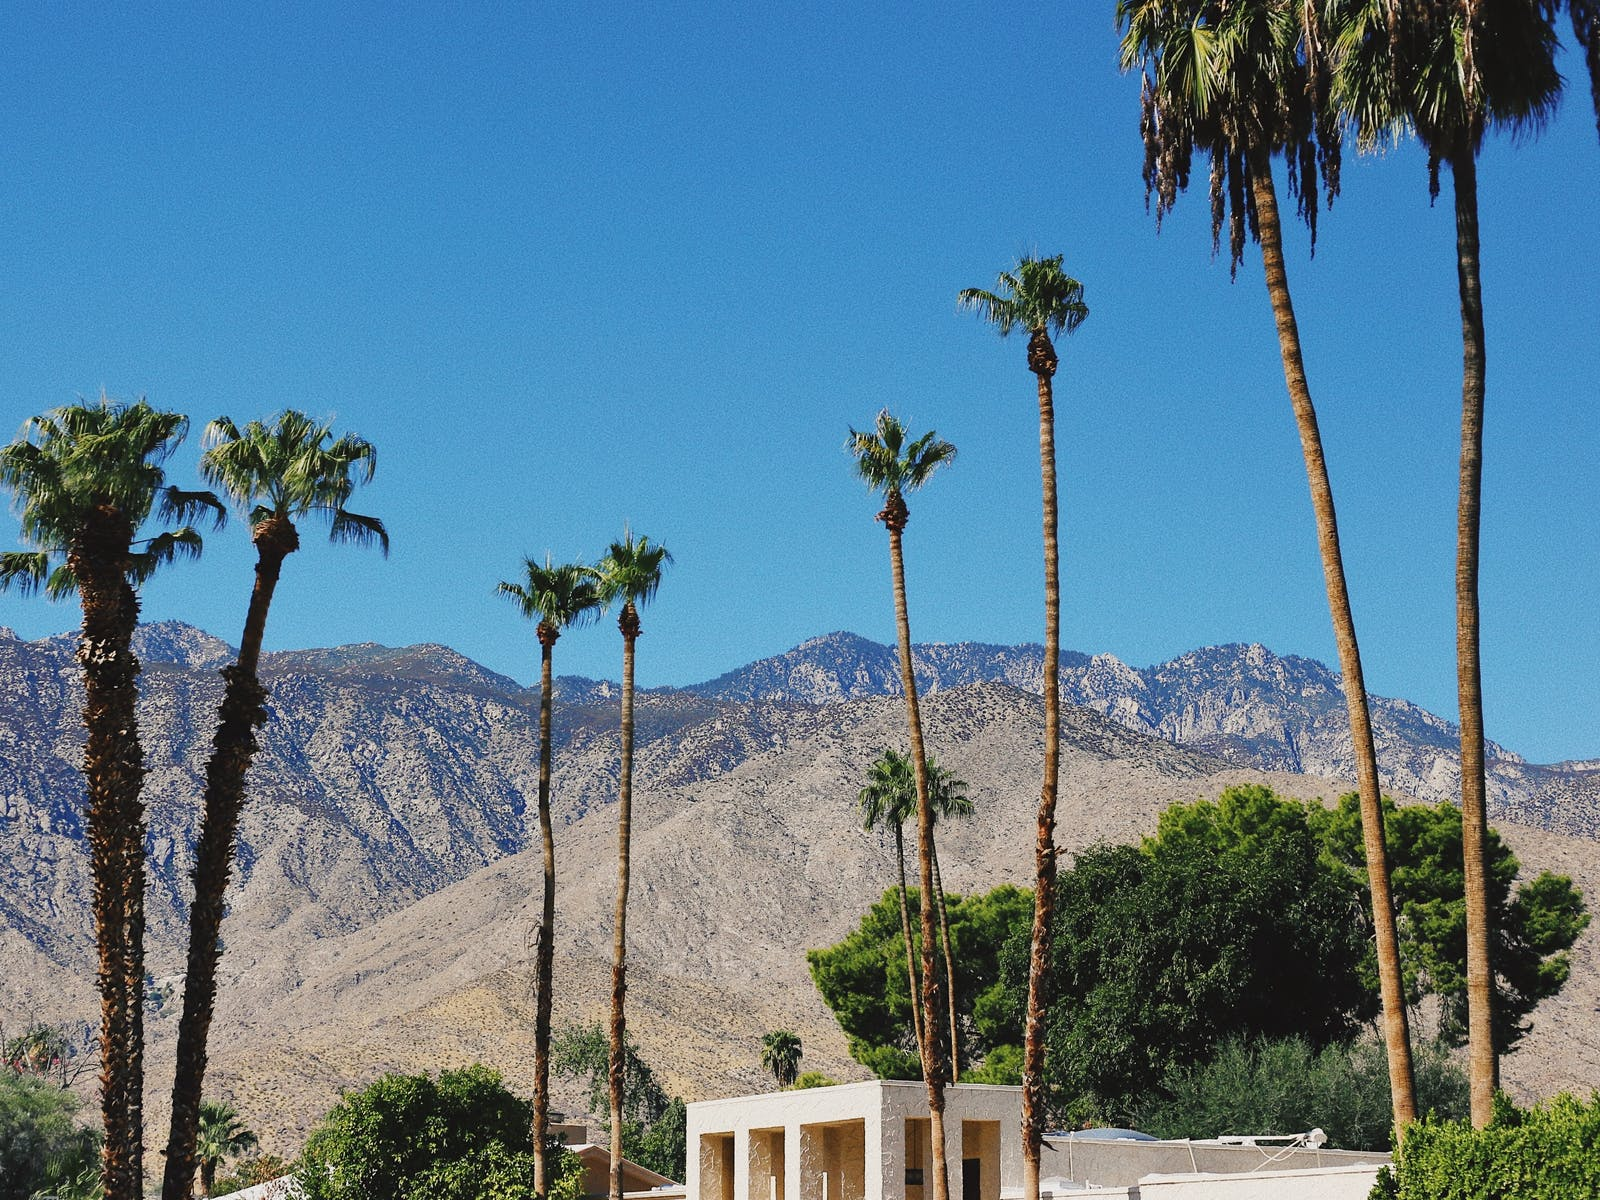 California mountains and palm trees